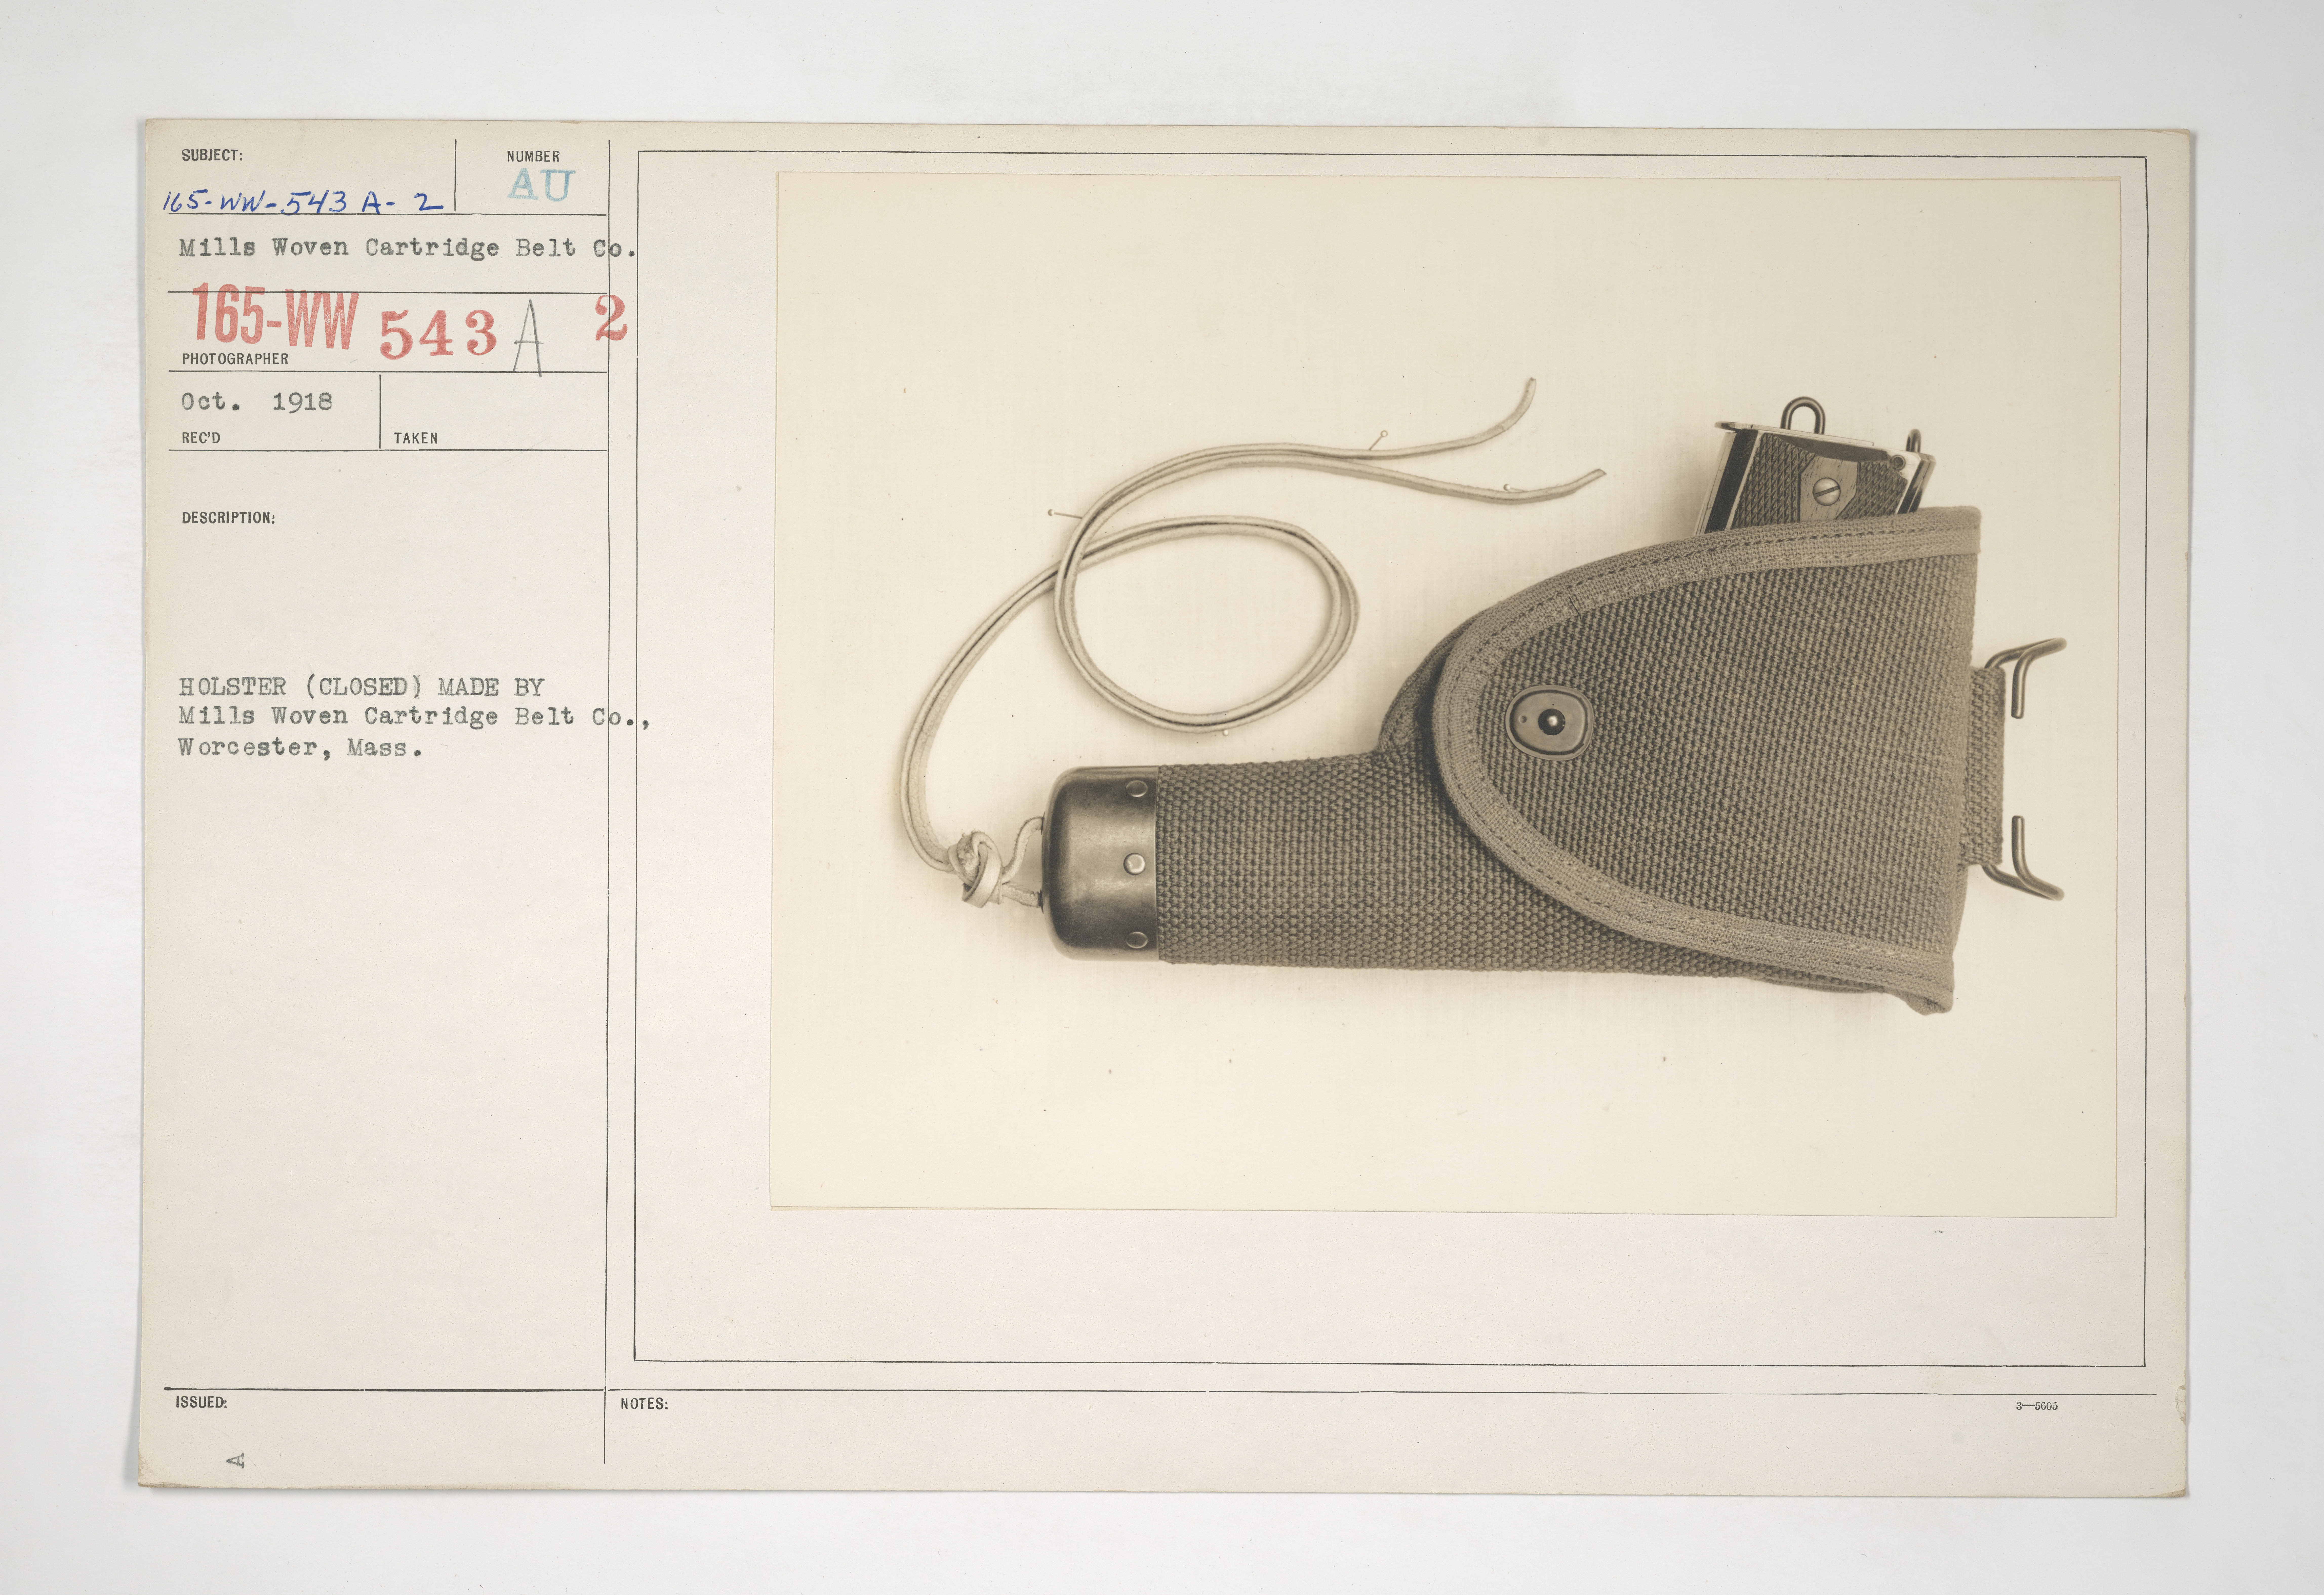 Uniforms and Equipment - Pouches and Scabbards [165-WW-543A-2]